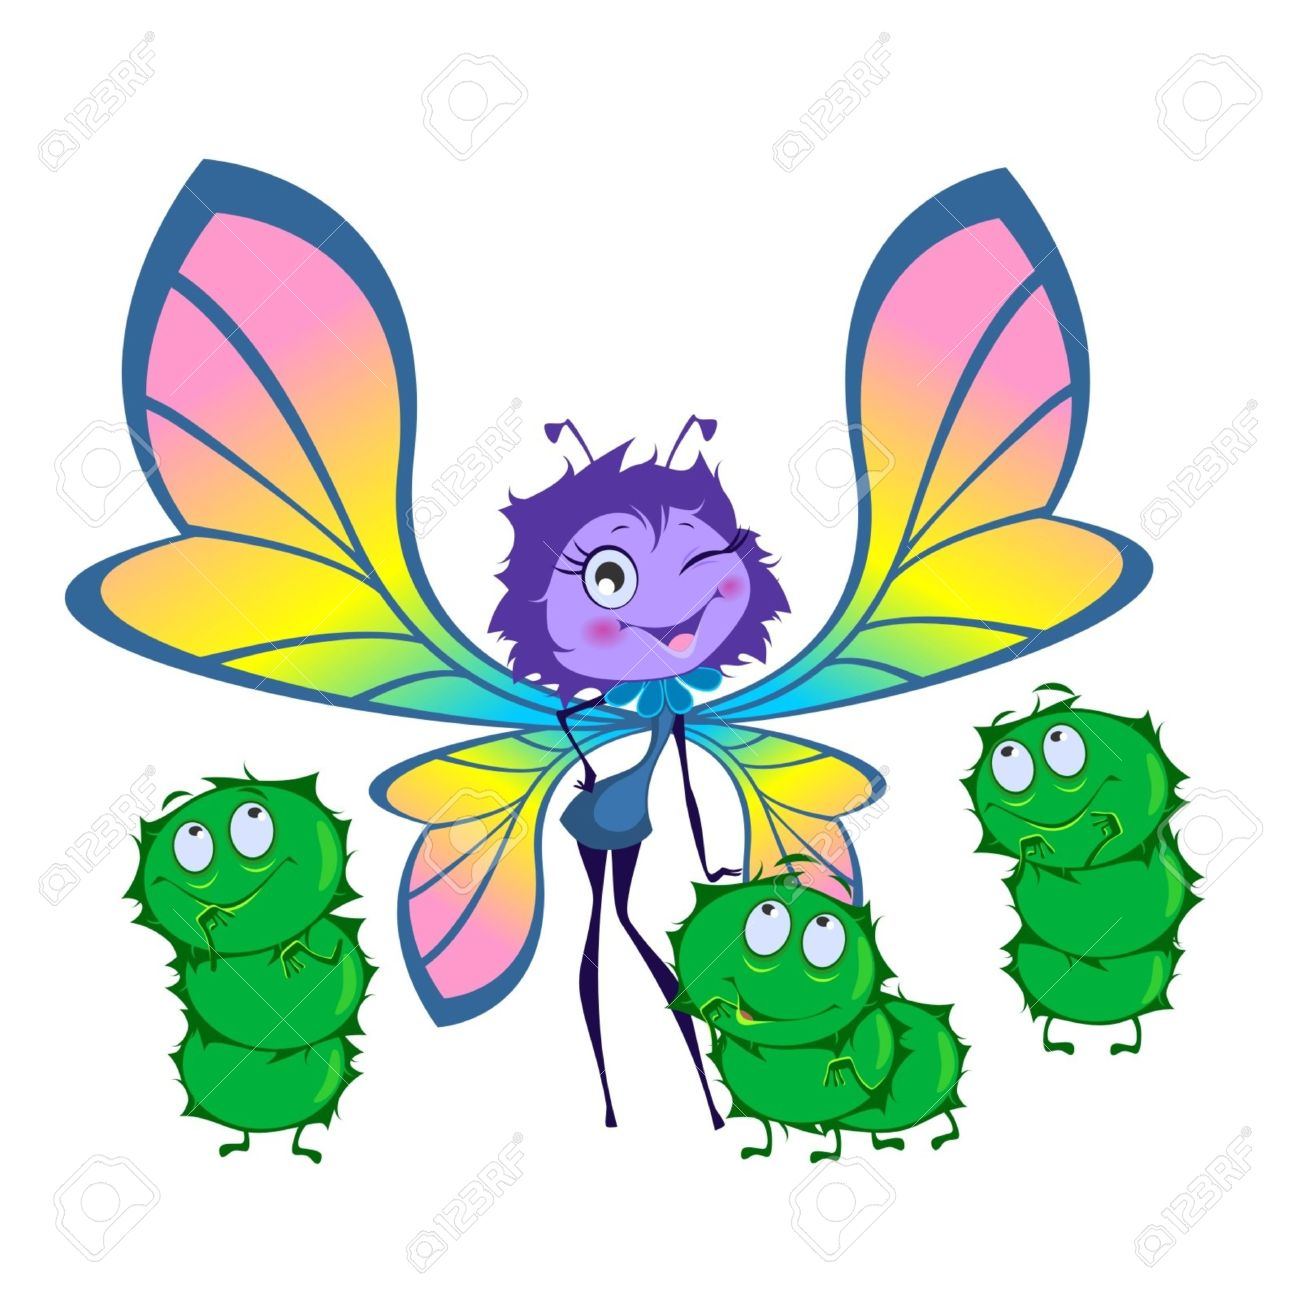 1,694 Caterpillar To Butterfly Stock Vector Illustration And.